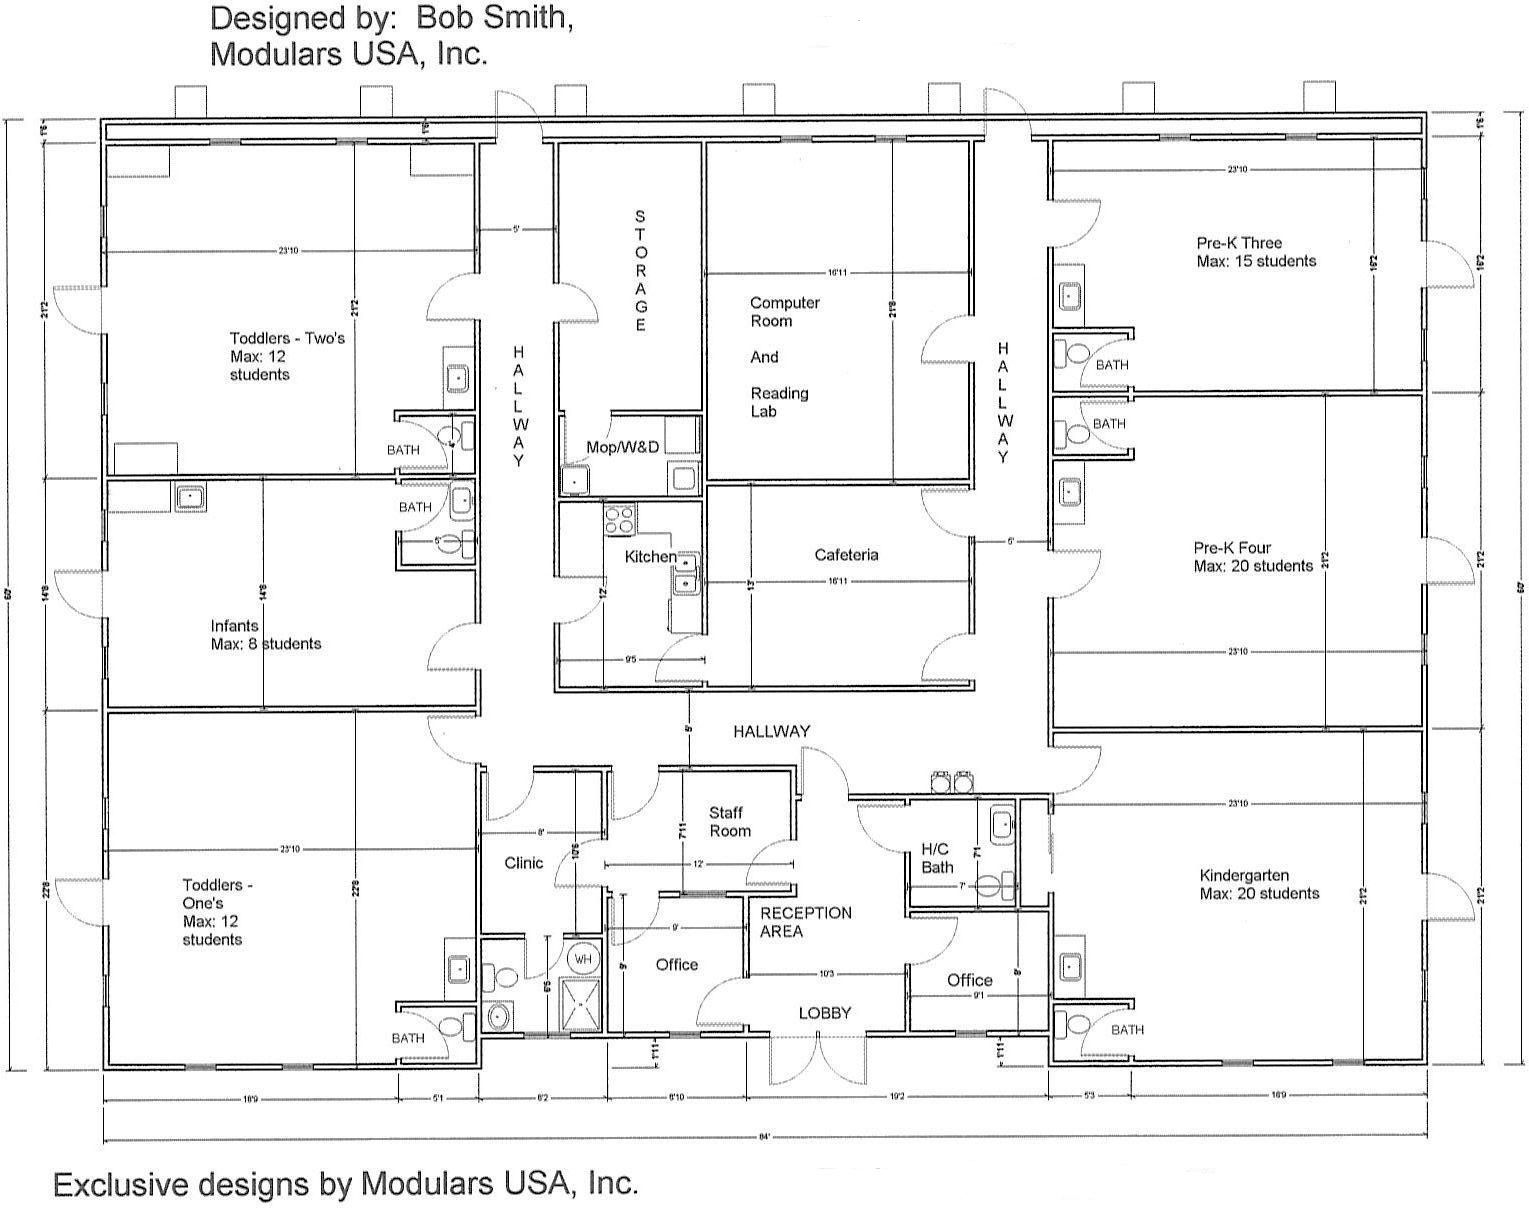 daycare center blueprints | Floor Plan for MindExpander ™ Day Care on day care art, zen bedroom design, day care bathroom model, day care beds, day care decorating ideas, day care painting ideas, day care building design, day care office design, day care interior design, day care bathroom layouts, day care lobby design, day care center designs,